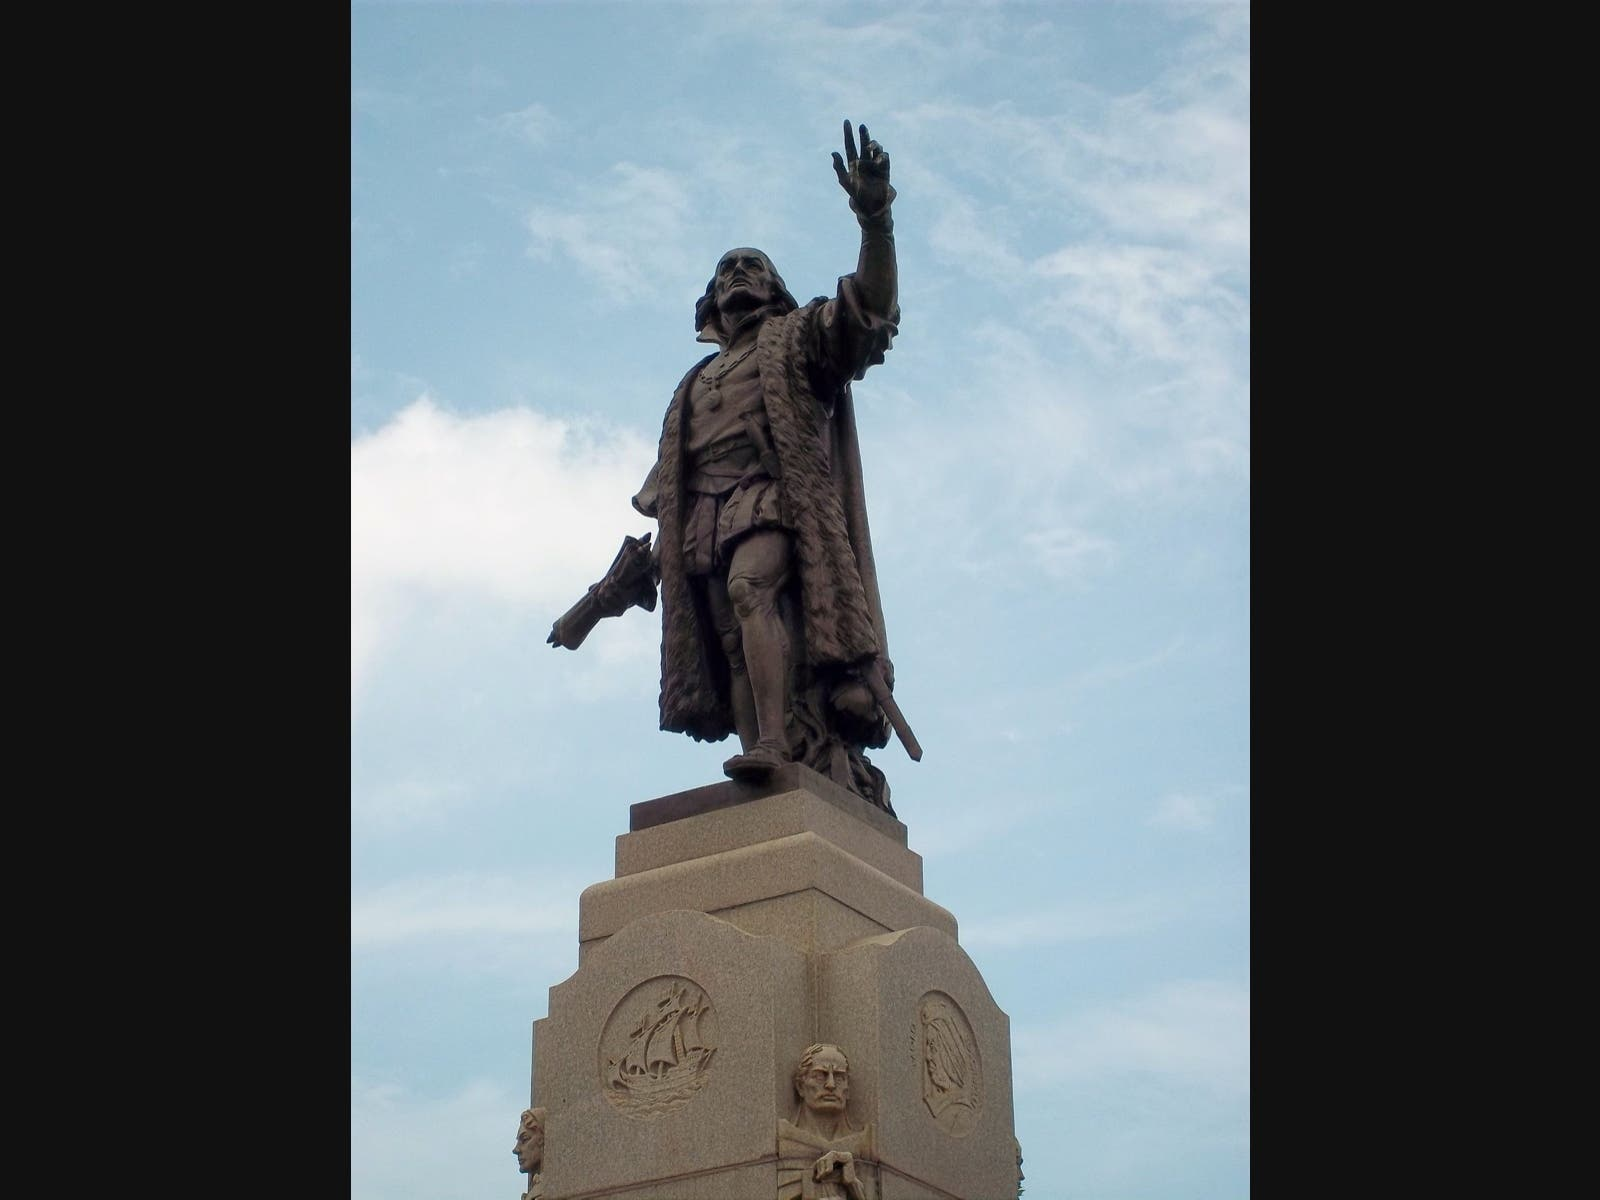 Honoring Columbus Day and American tradition - Patch.com